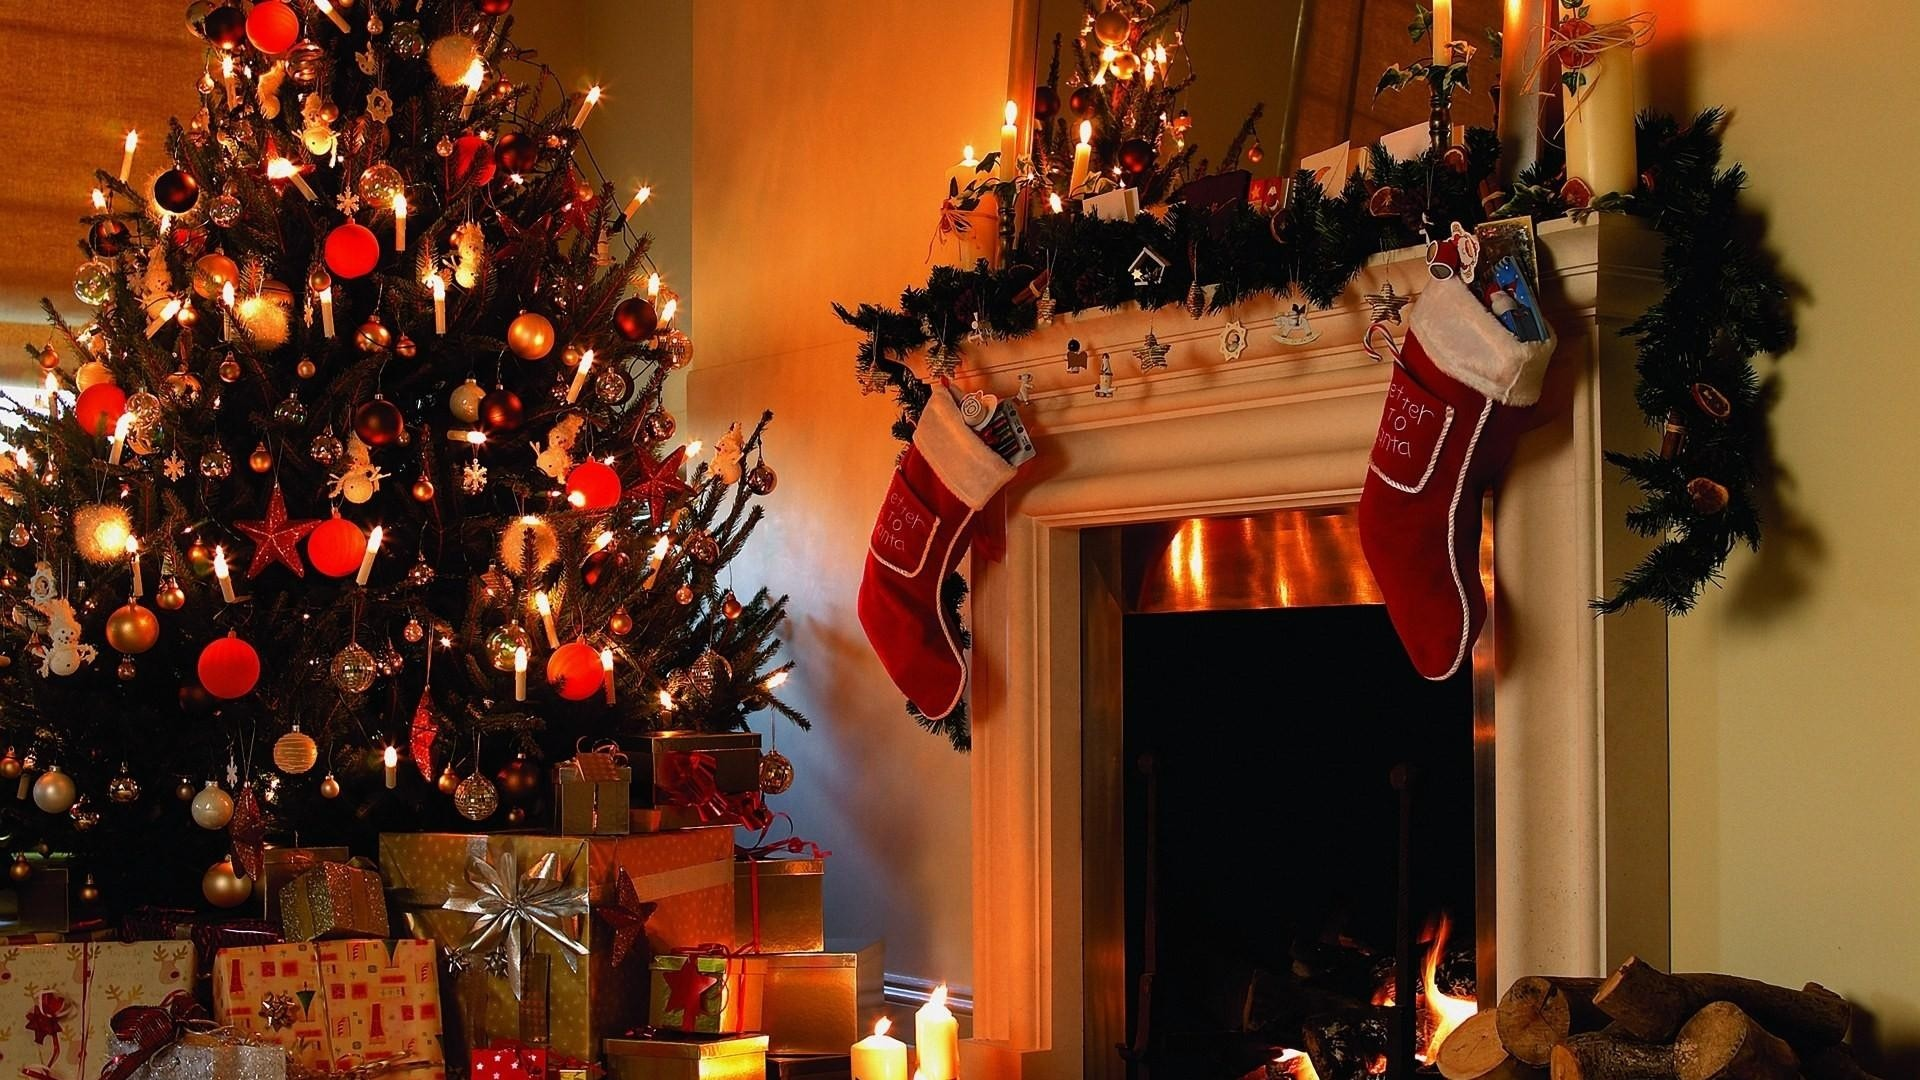 Res: 1920x1080, Download--Christmas-tree-Gifts-Candles-wallpaper-wp2004375